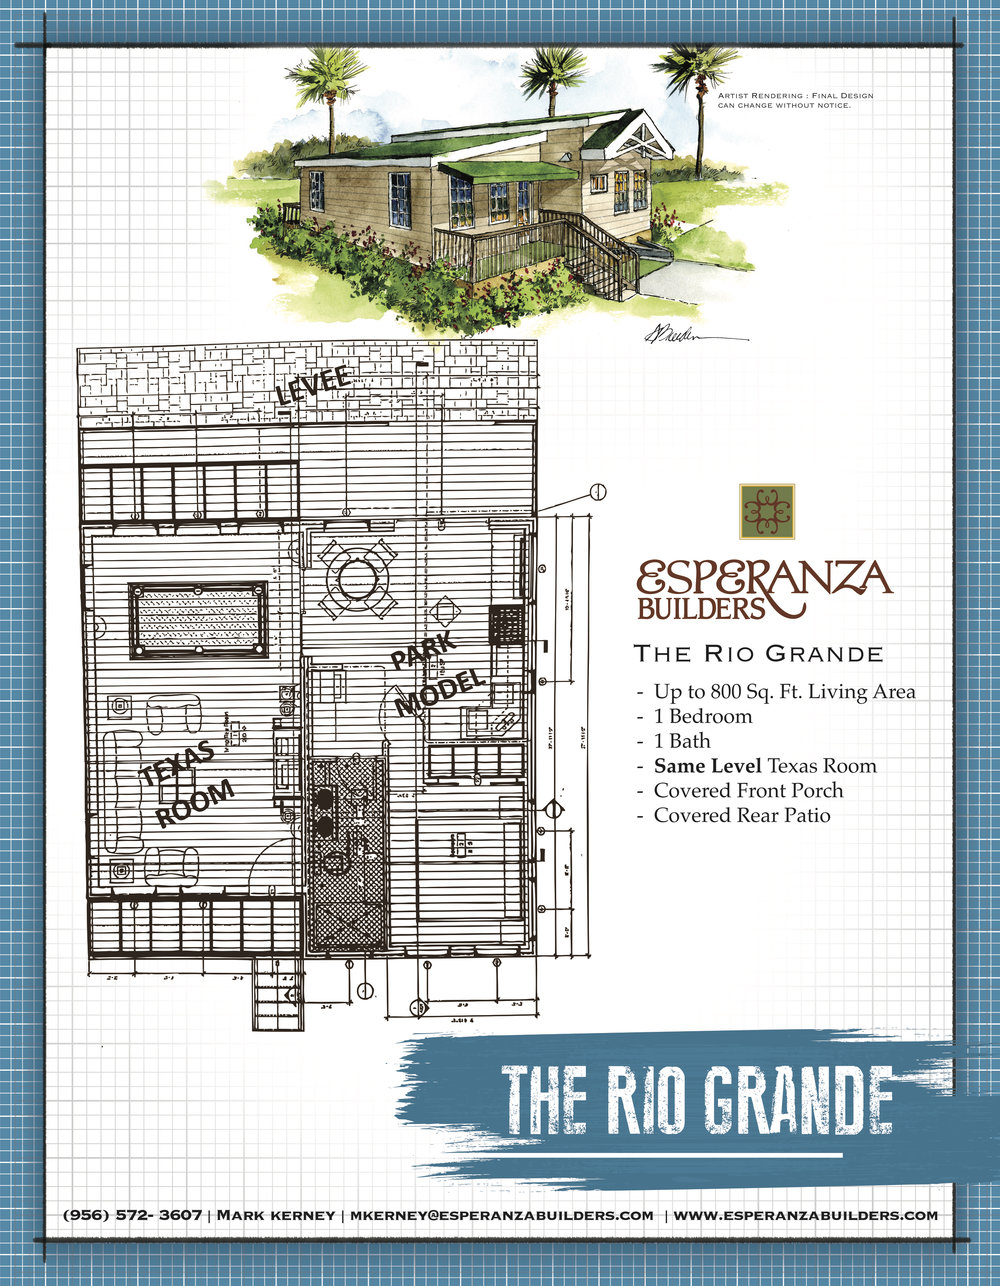 0119-07 Esperanza Group 8x5 Insert-TheRioGrande copy.jpg